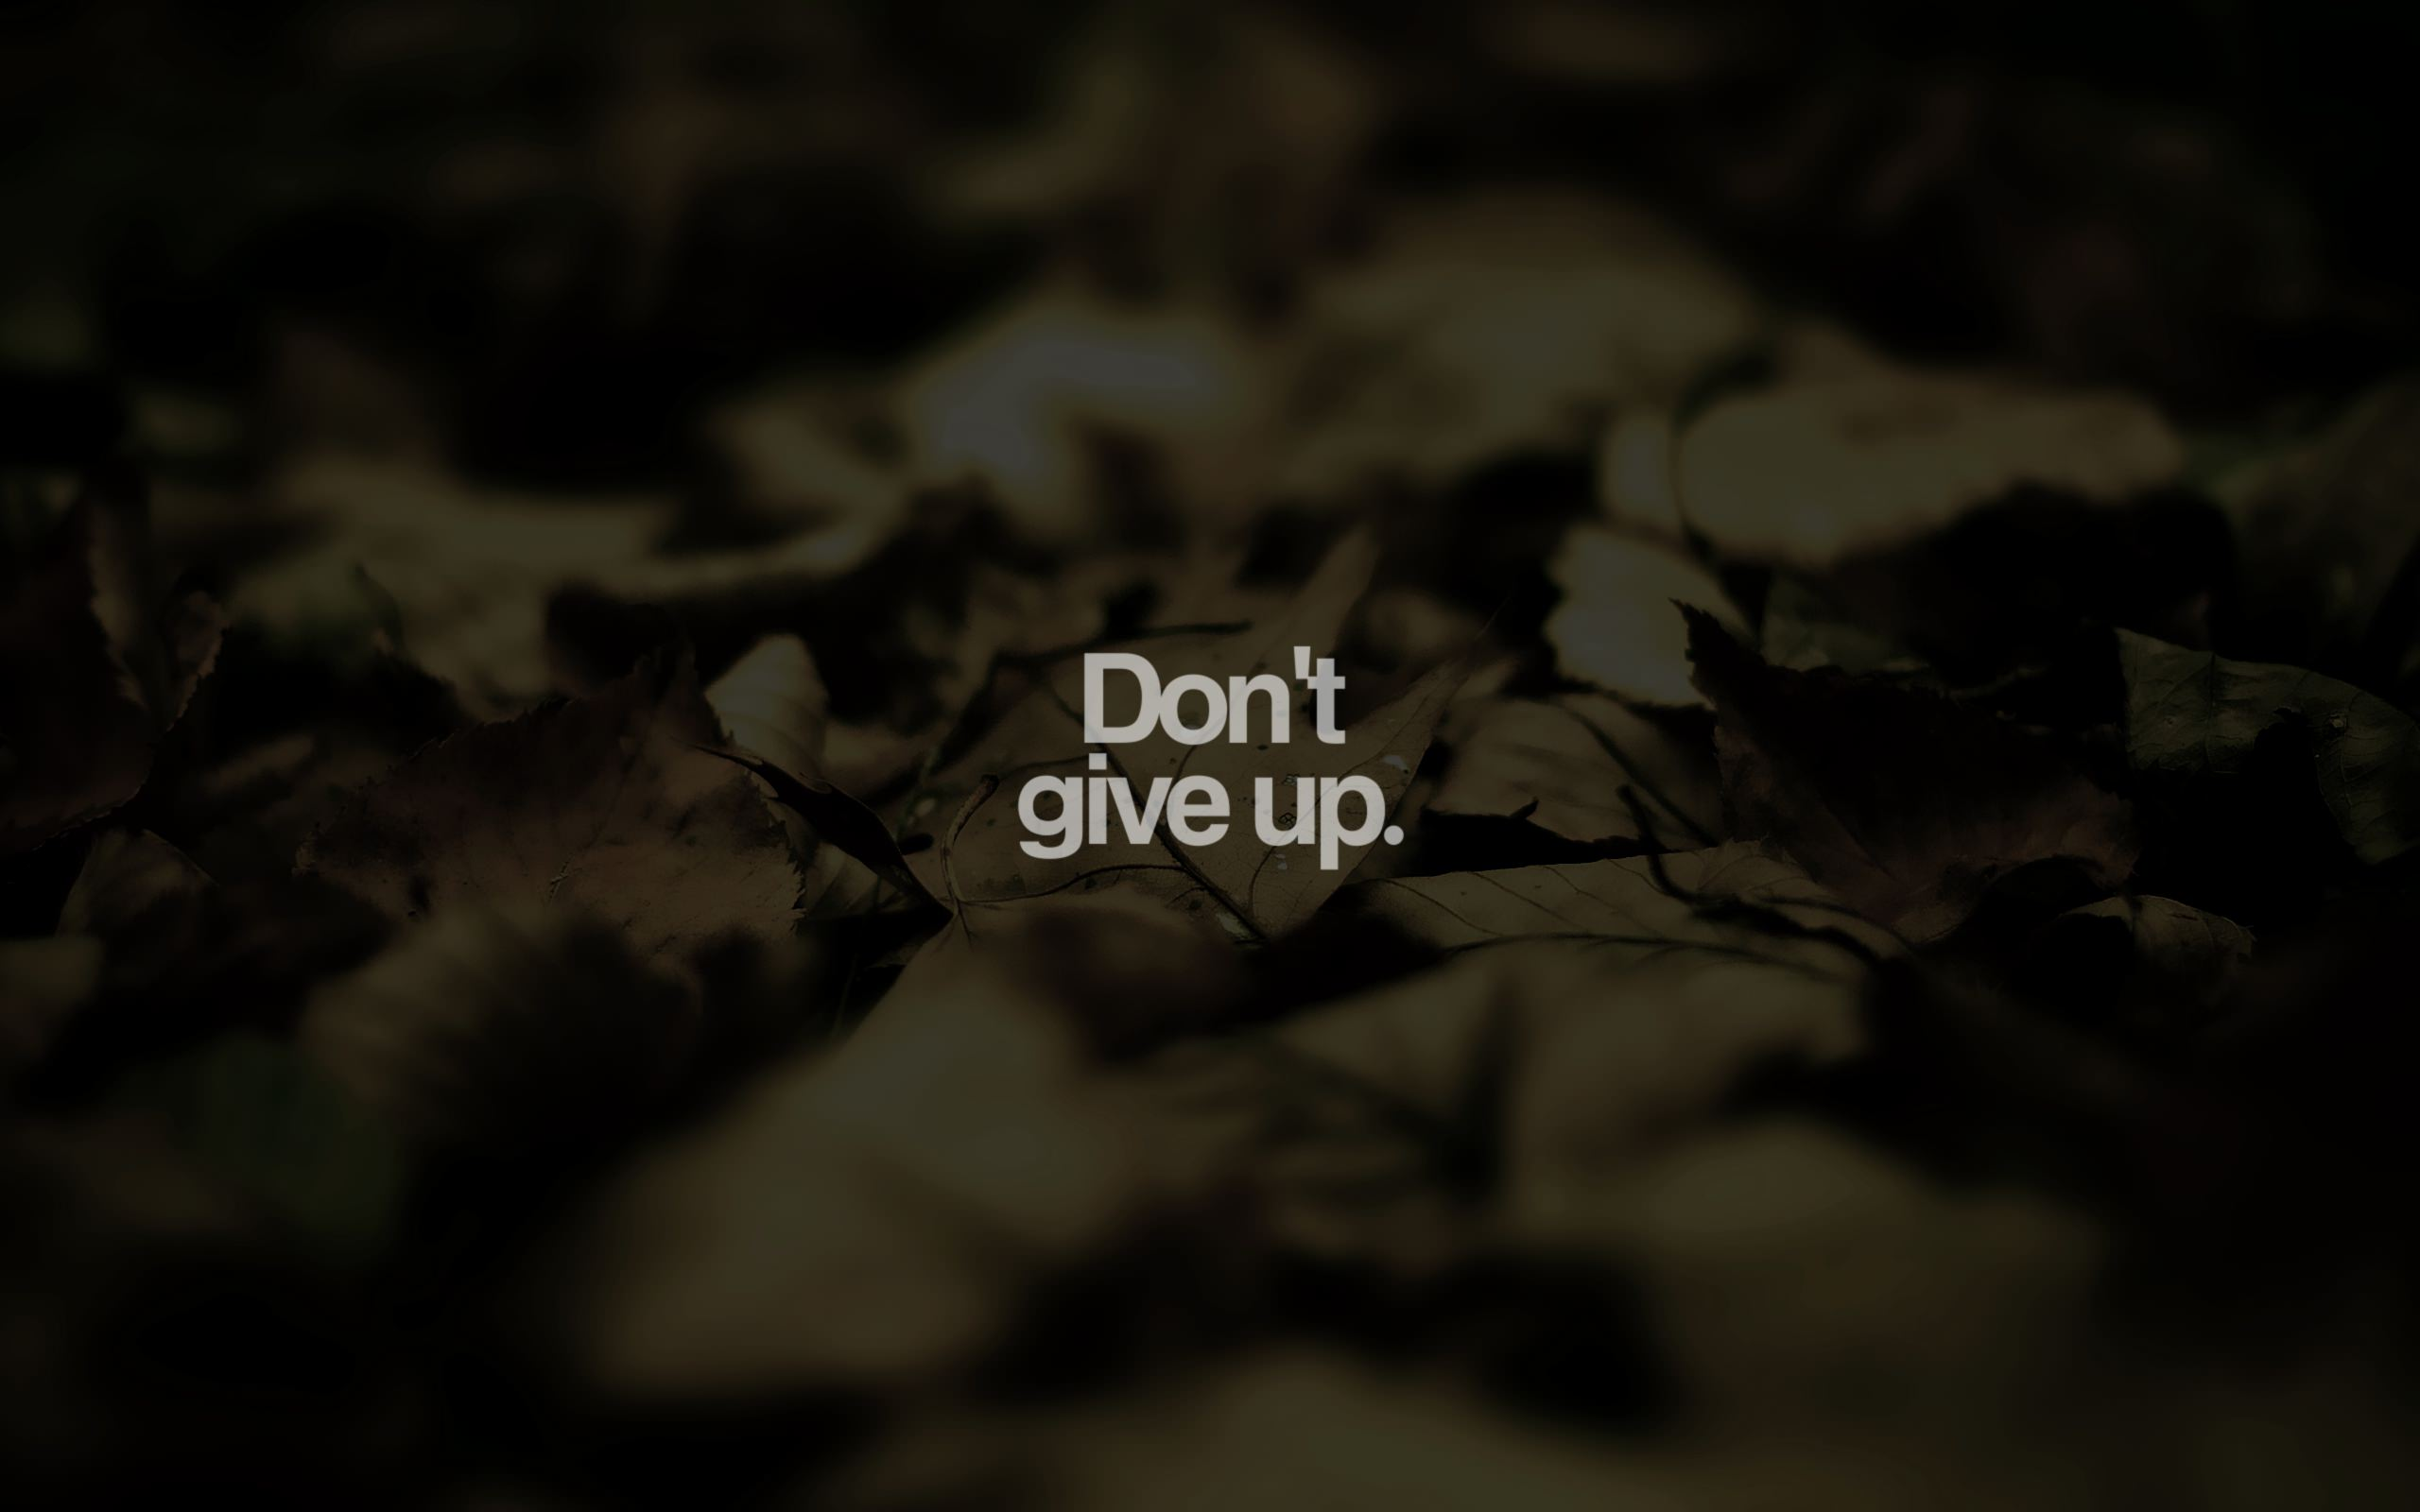 Motivational Wallpaper Hd 1080p Posted By John Anderson